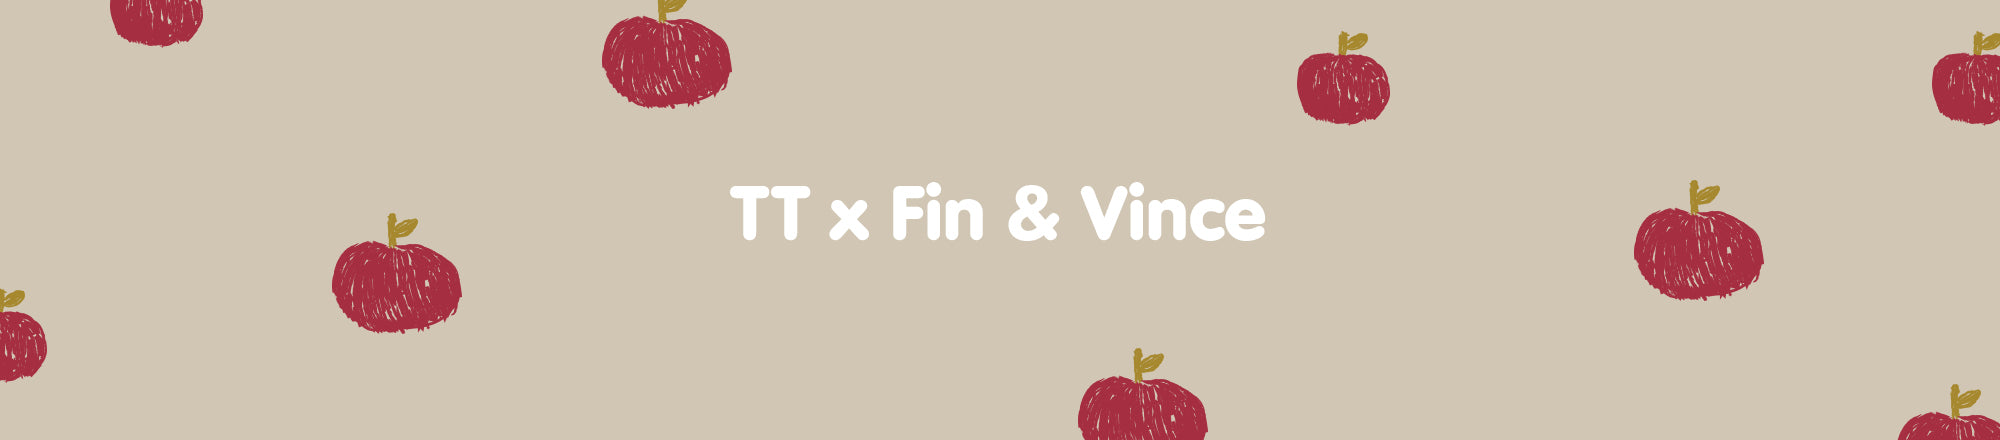 TT x Fin & Vince product page